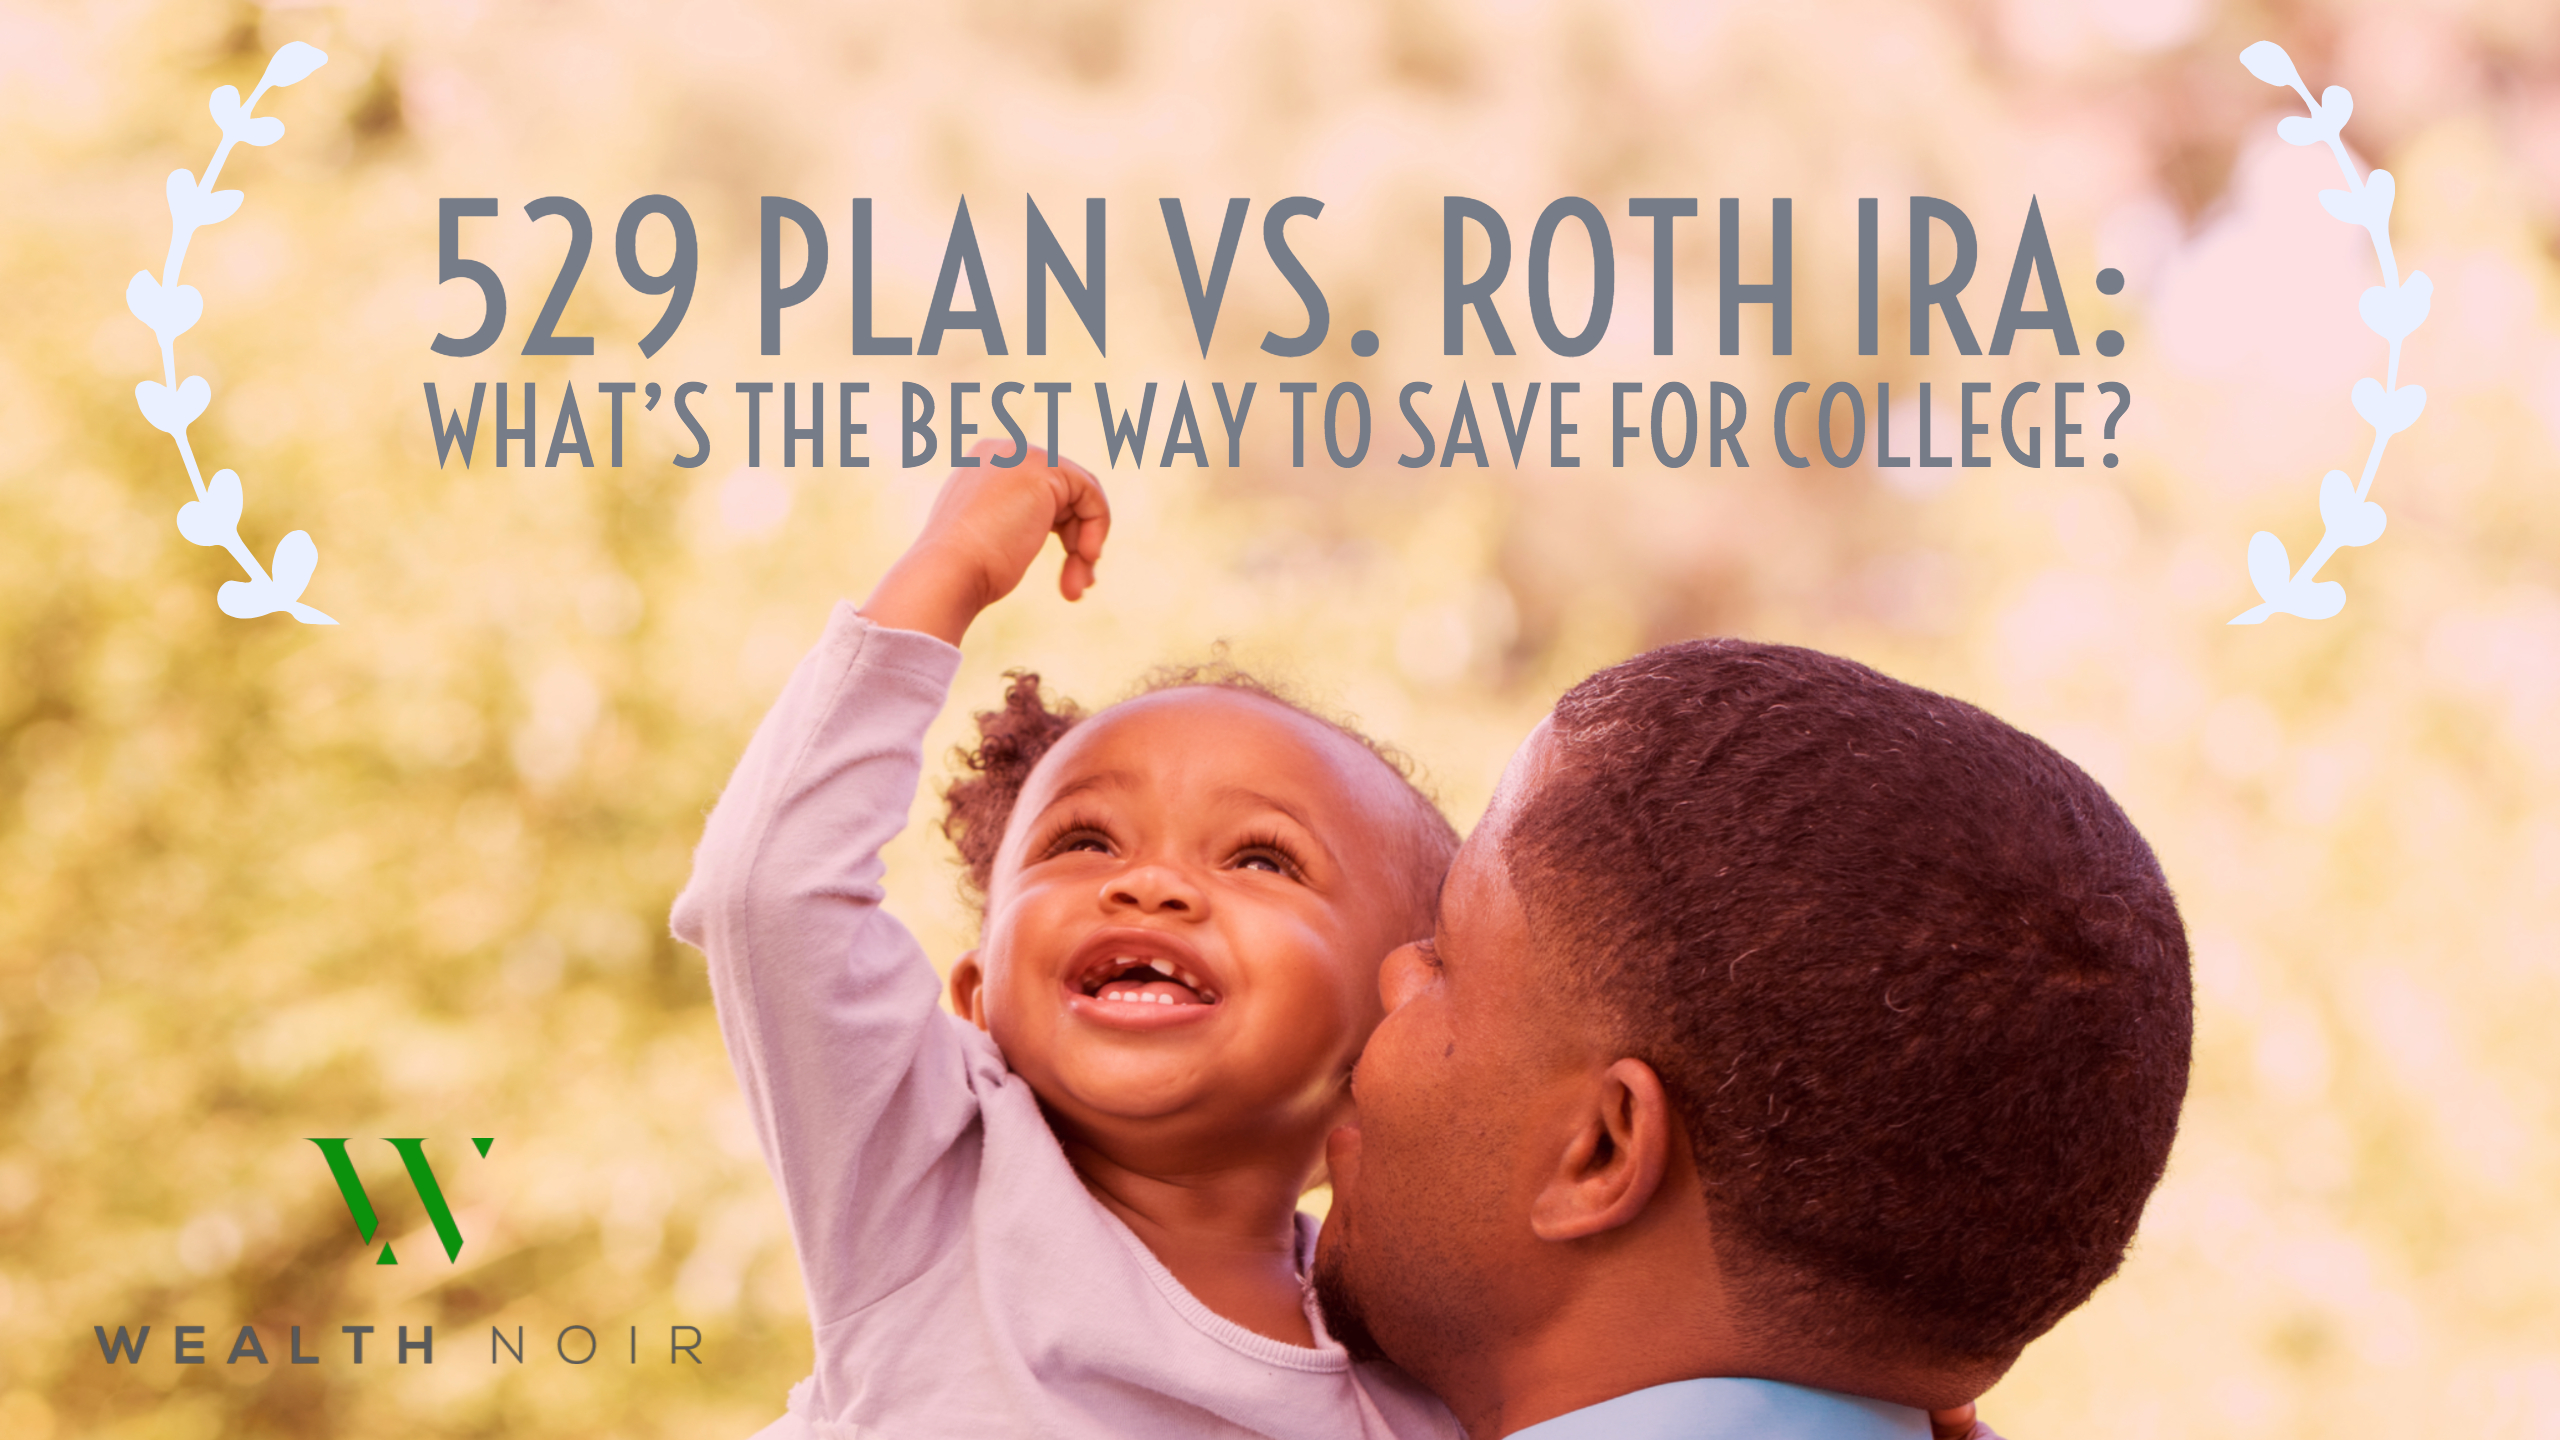 529 Plan vs. Roth IRA Whats the Best Way to Save for College.blog_?fit=2560%2C1440&ssl=1 529 plan vs roth ira what's the best for college savings? wealth